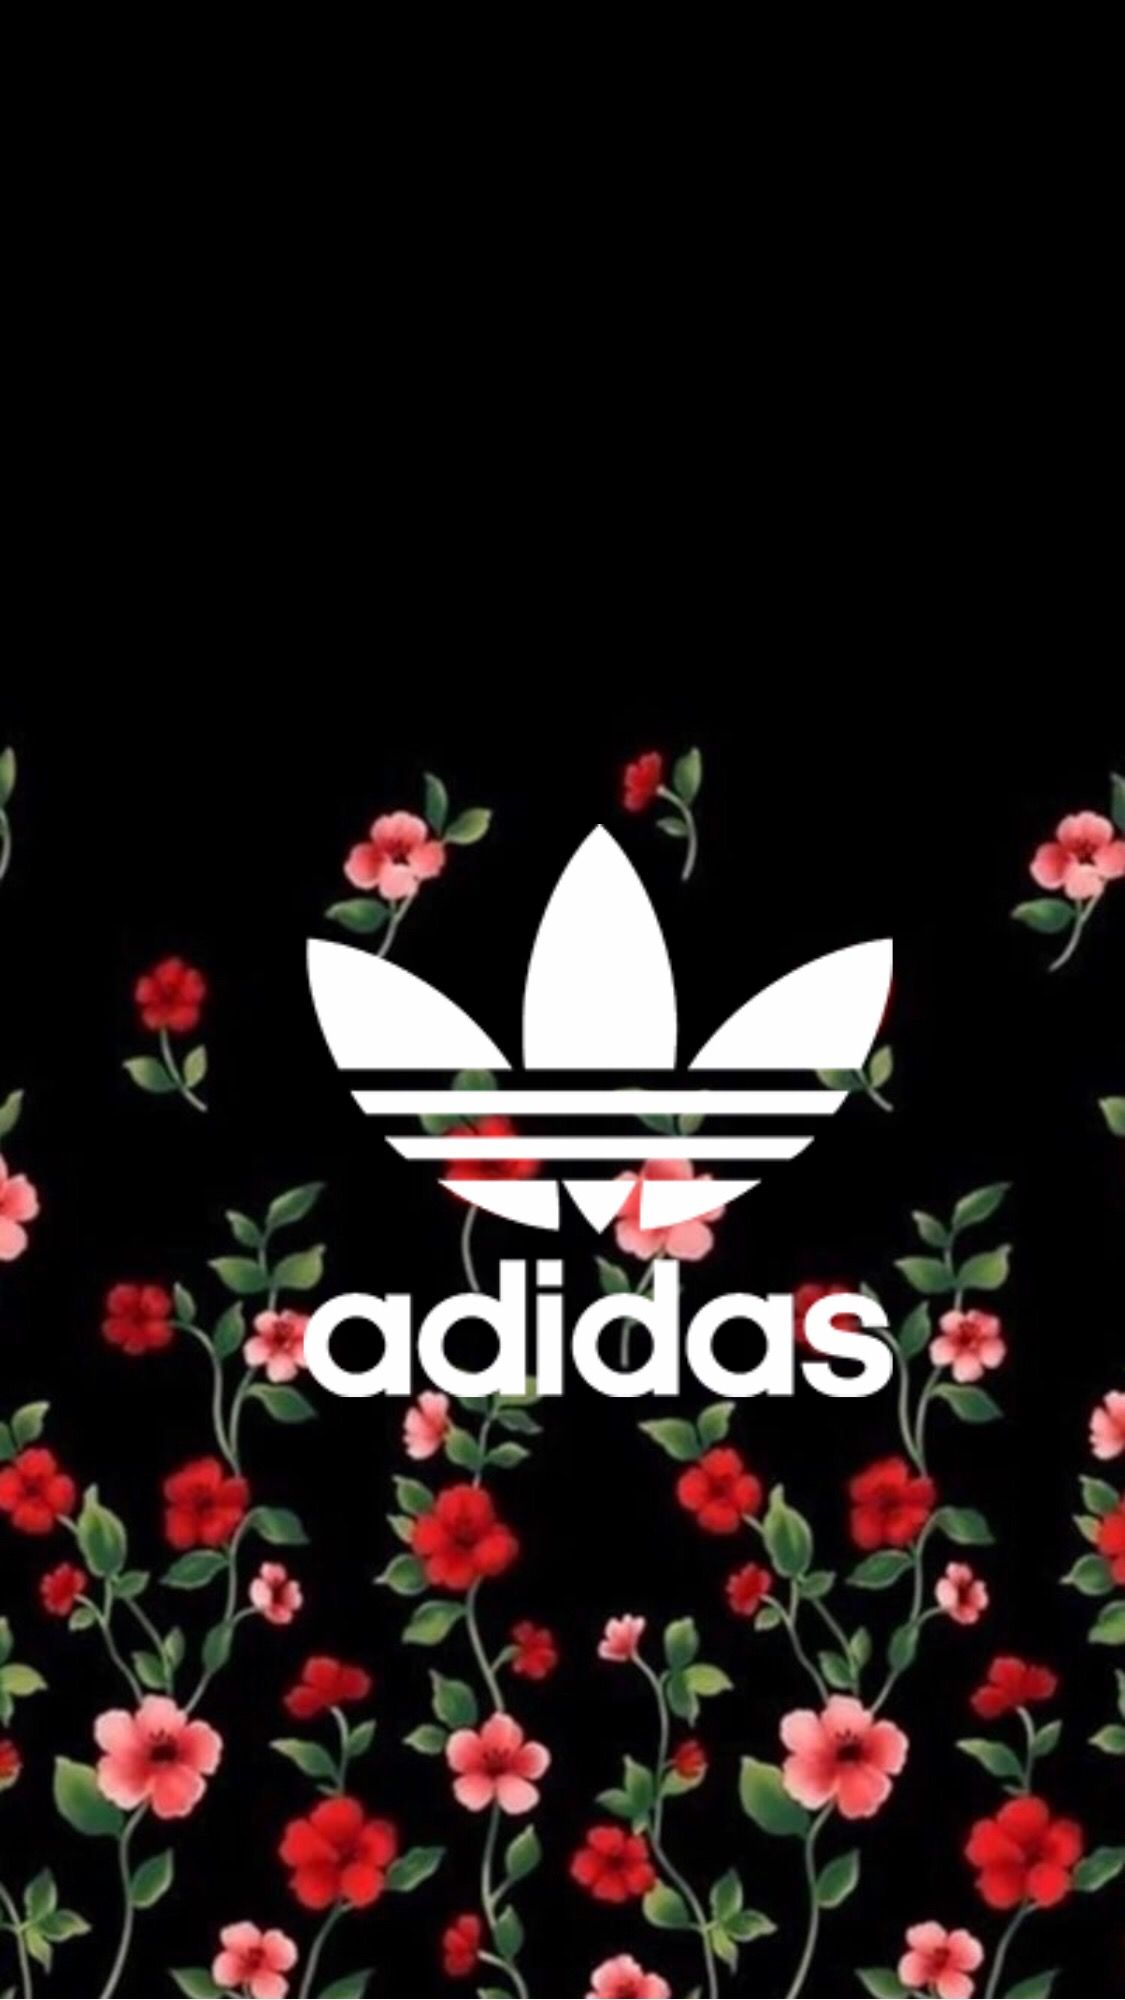 Cool adidas wallpapers adidas backgrounds nike wallpaper wallpaper stickers